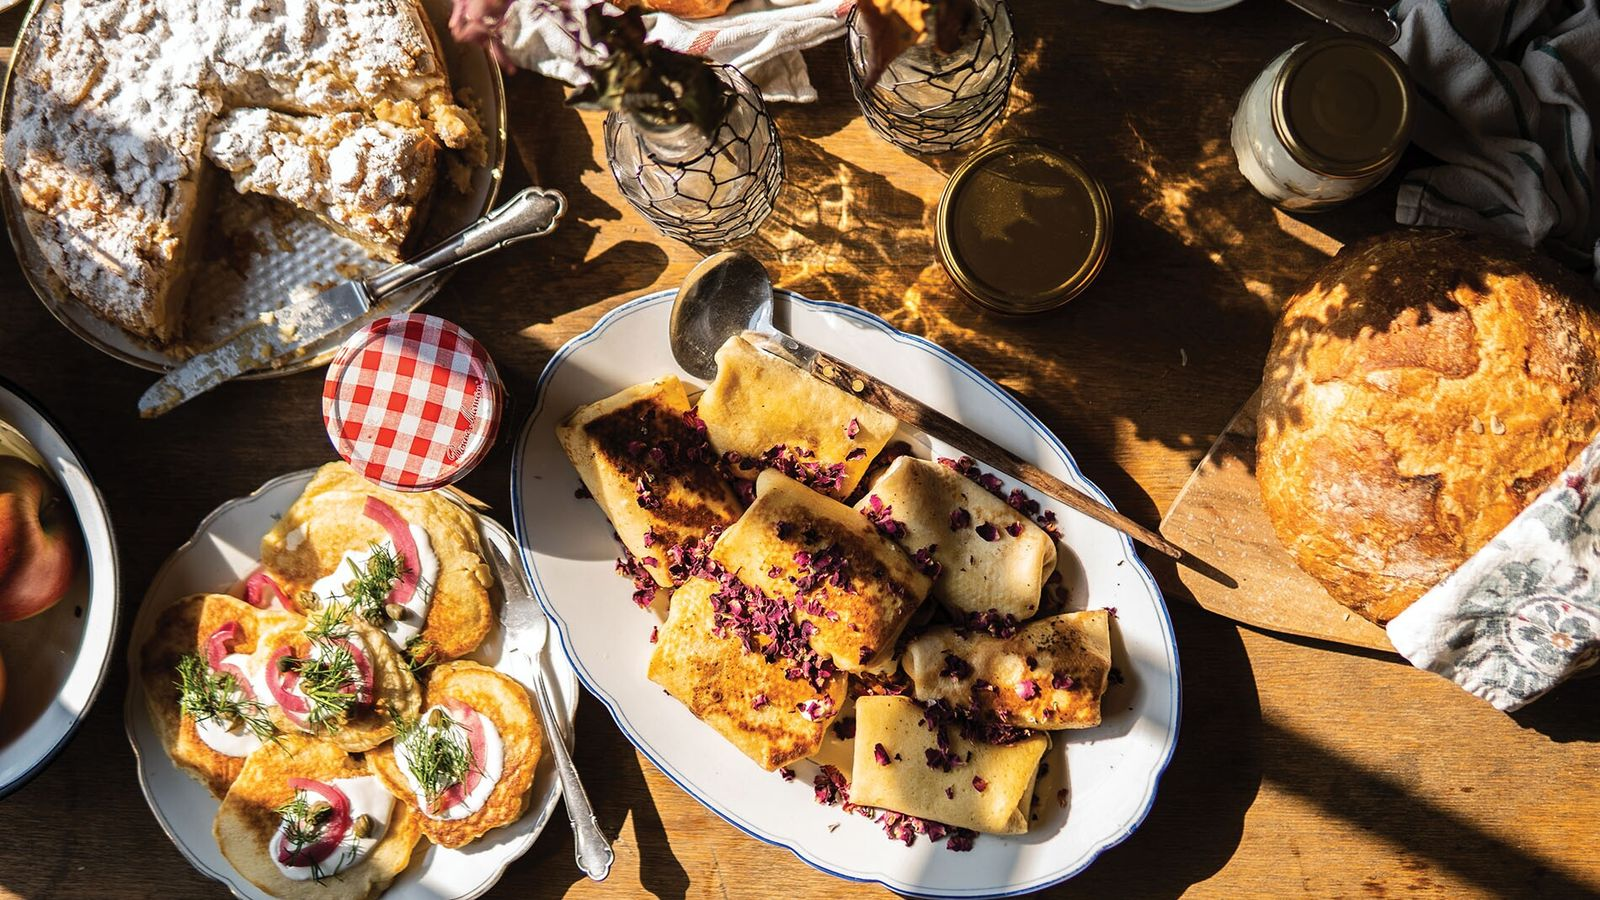 A full Polish breakfast is just one of the recipes available in Michał's new book.